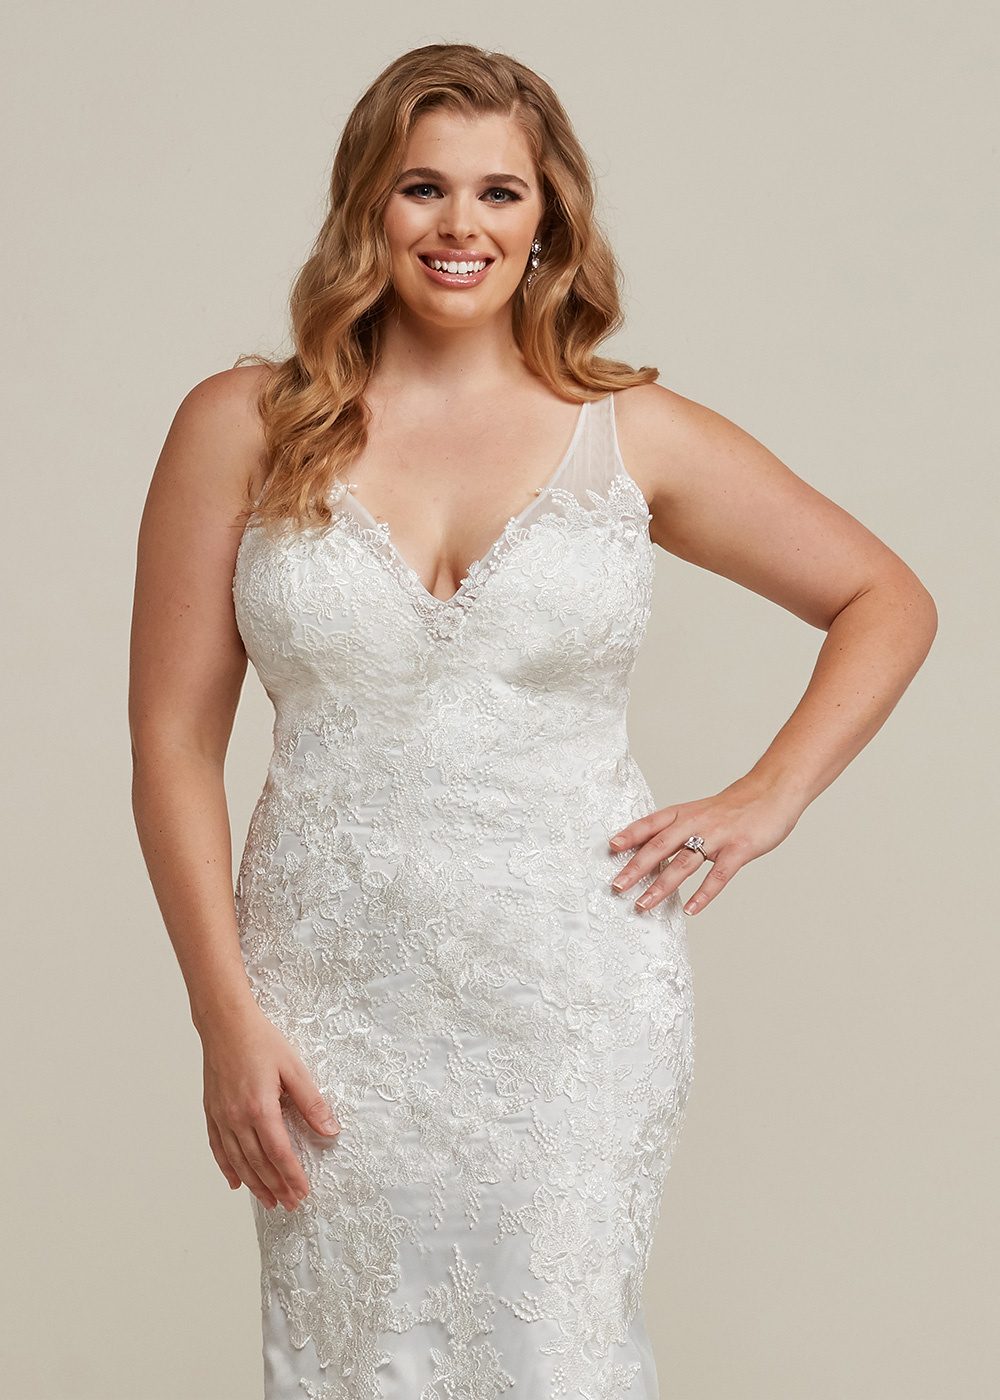 TH-Kaylee TH Wedding Dresses By Ashdon